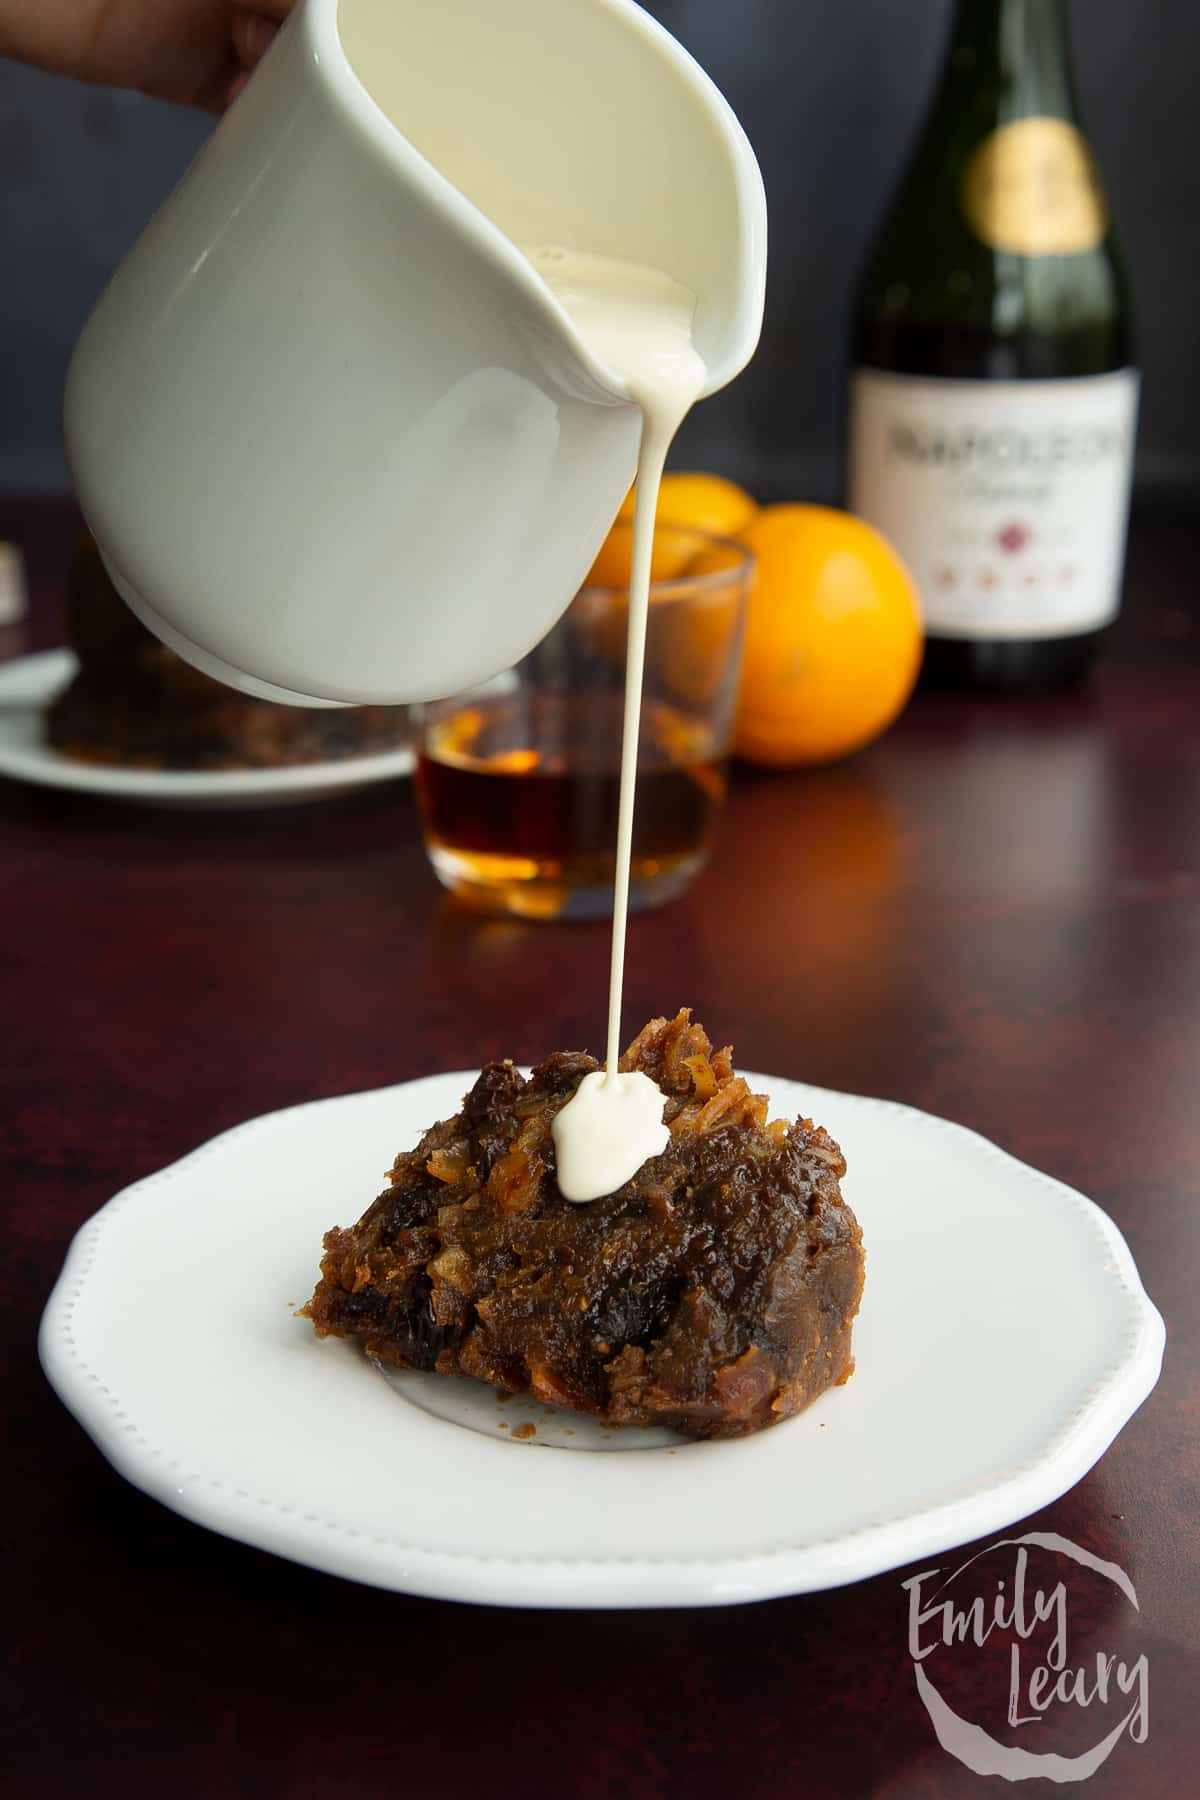 A piece of vegan Christmas pudding on a small white plate. Vegan cream is being poured on to it.